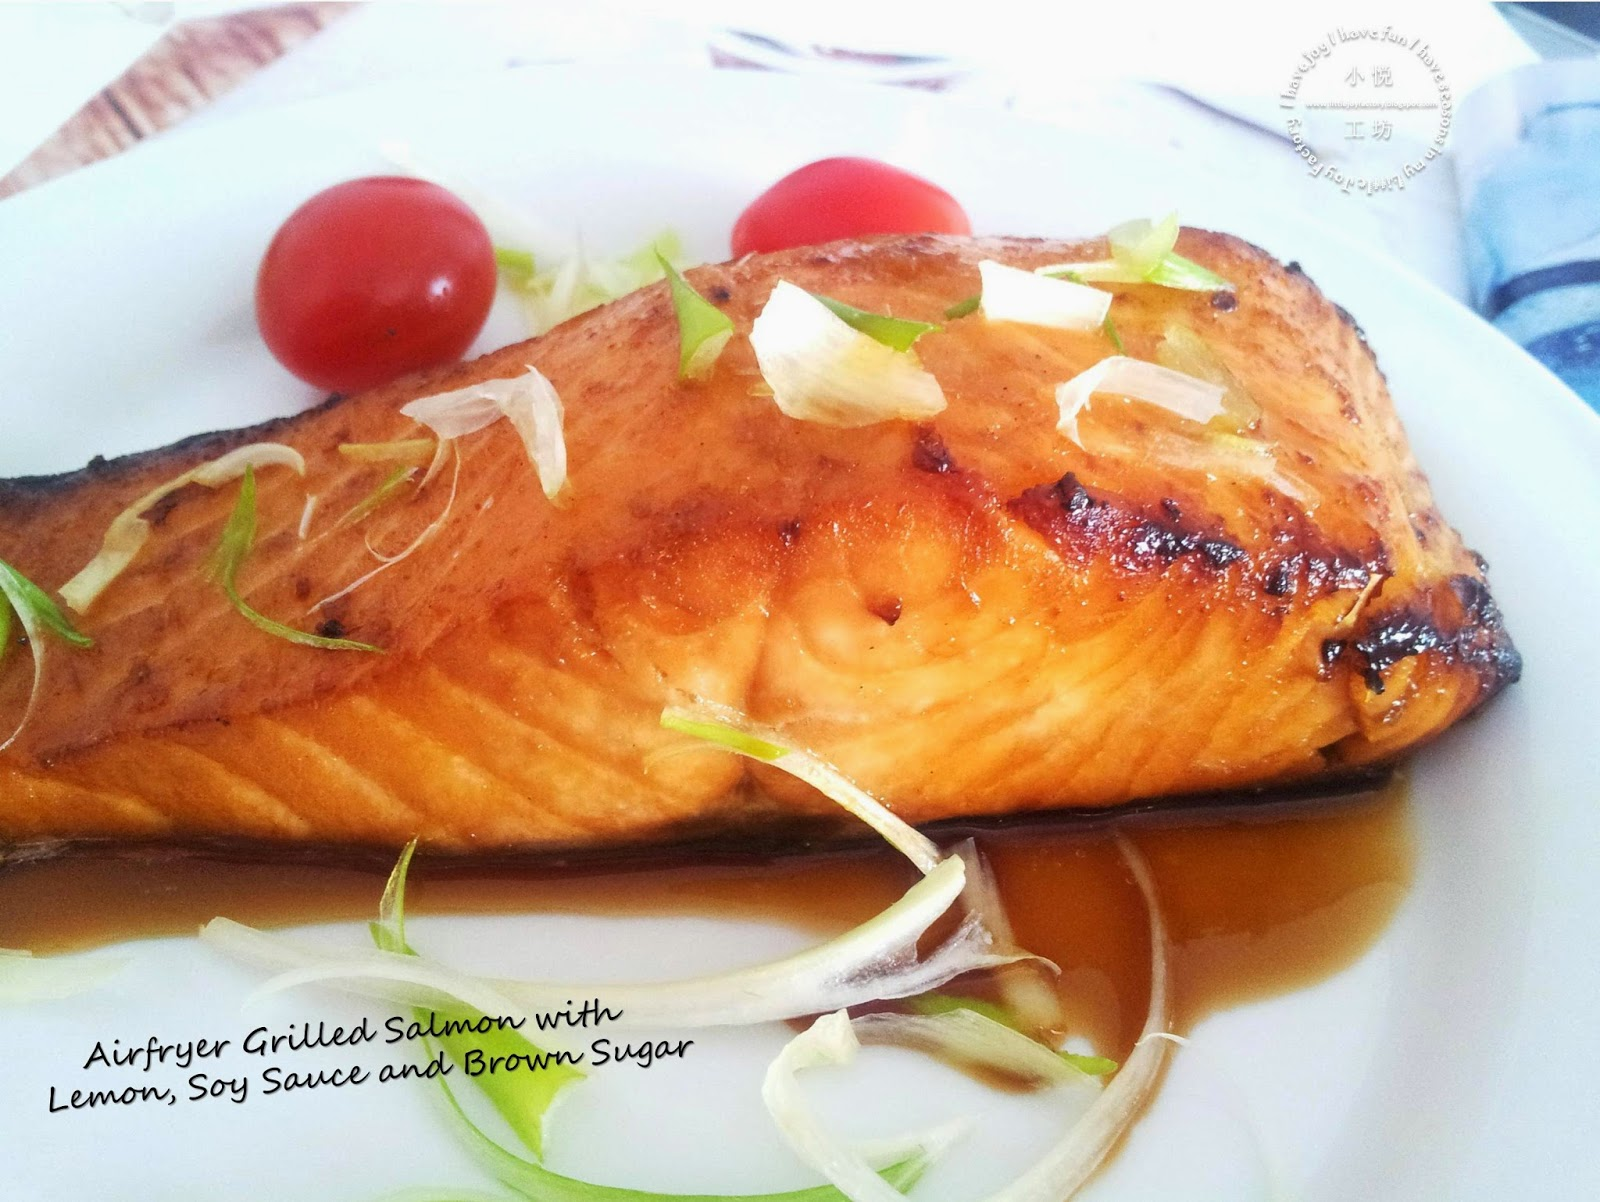 Airfryer Grilled Salmon